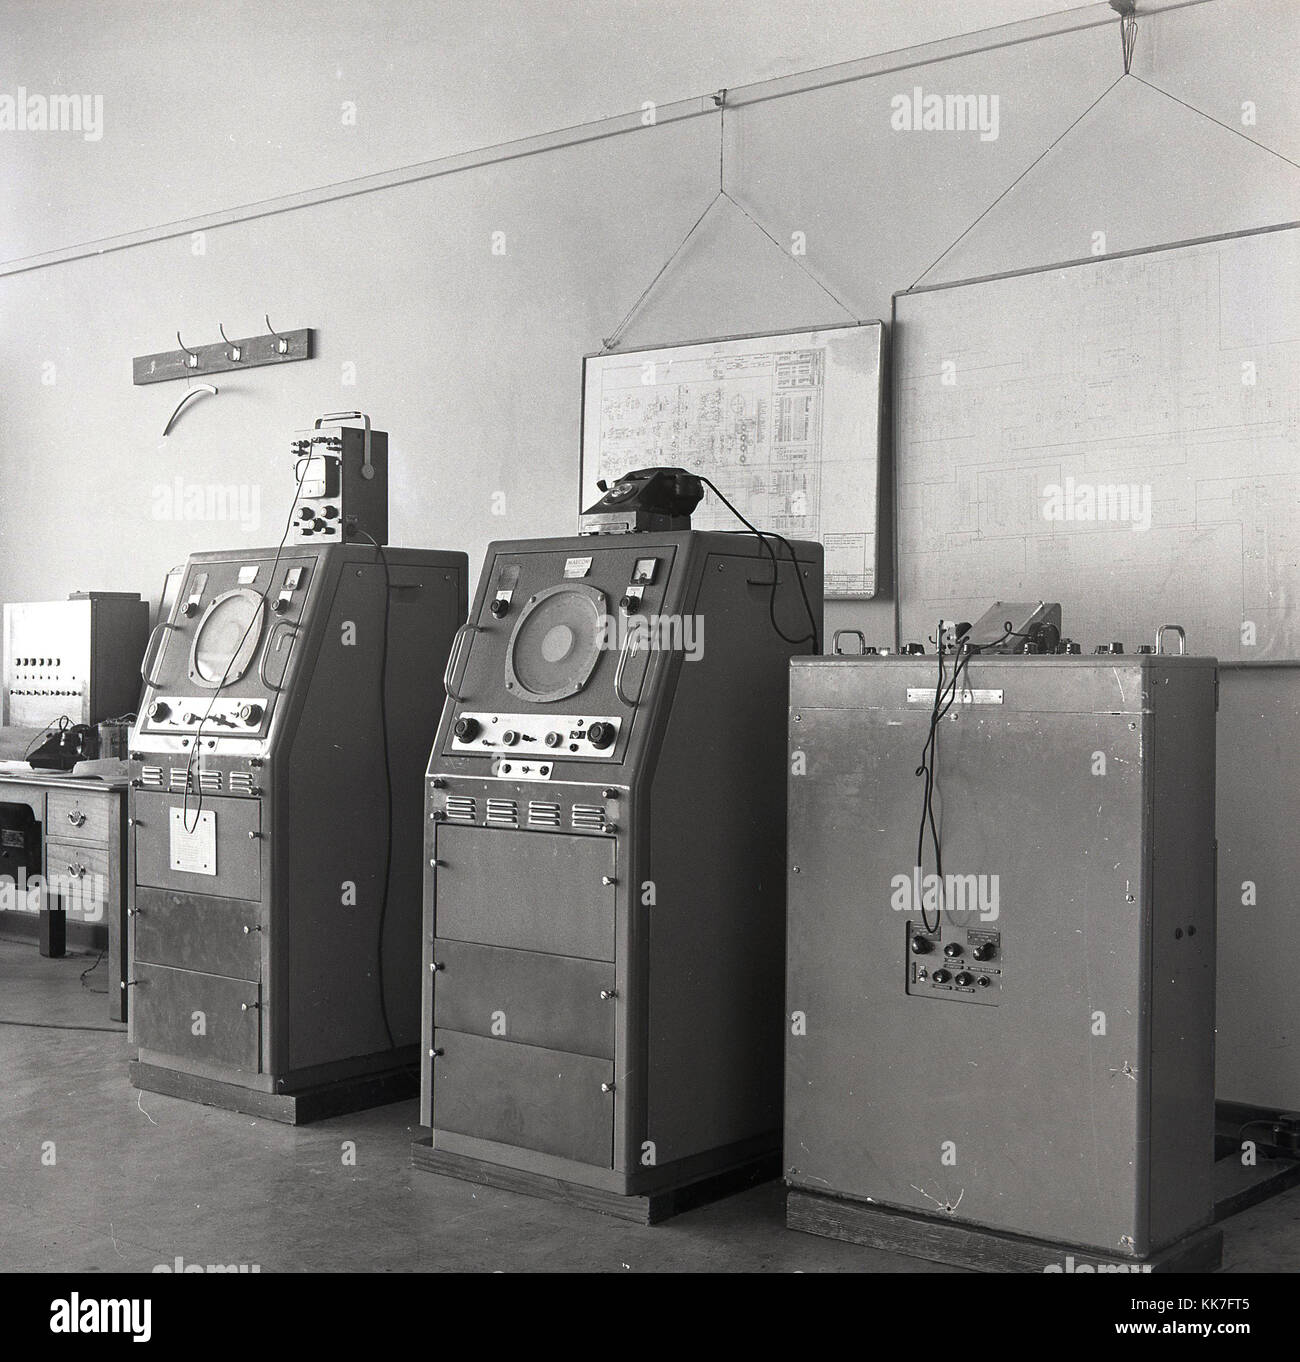 1950s, England, long-distance telecommunication machines of the Marconi Wireless Company. - Stock Image